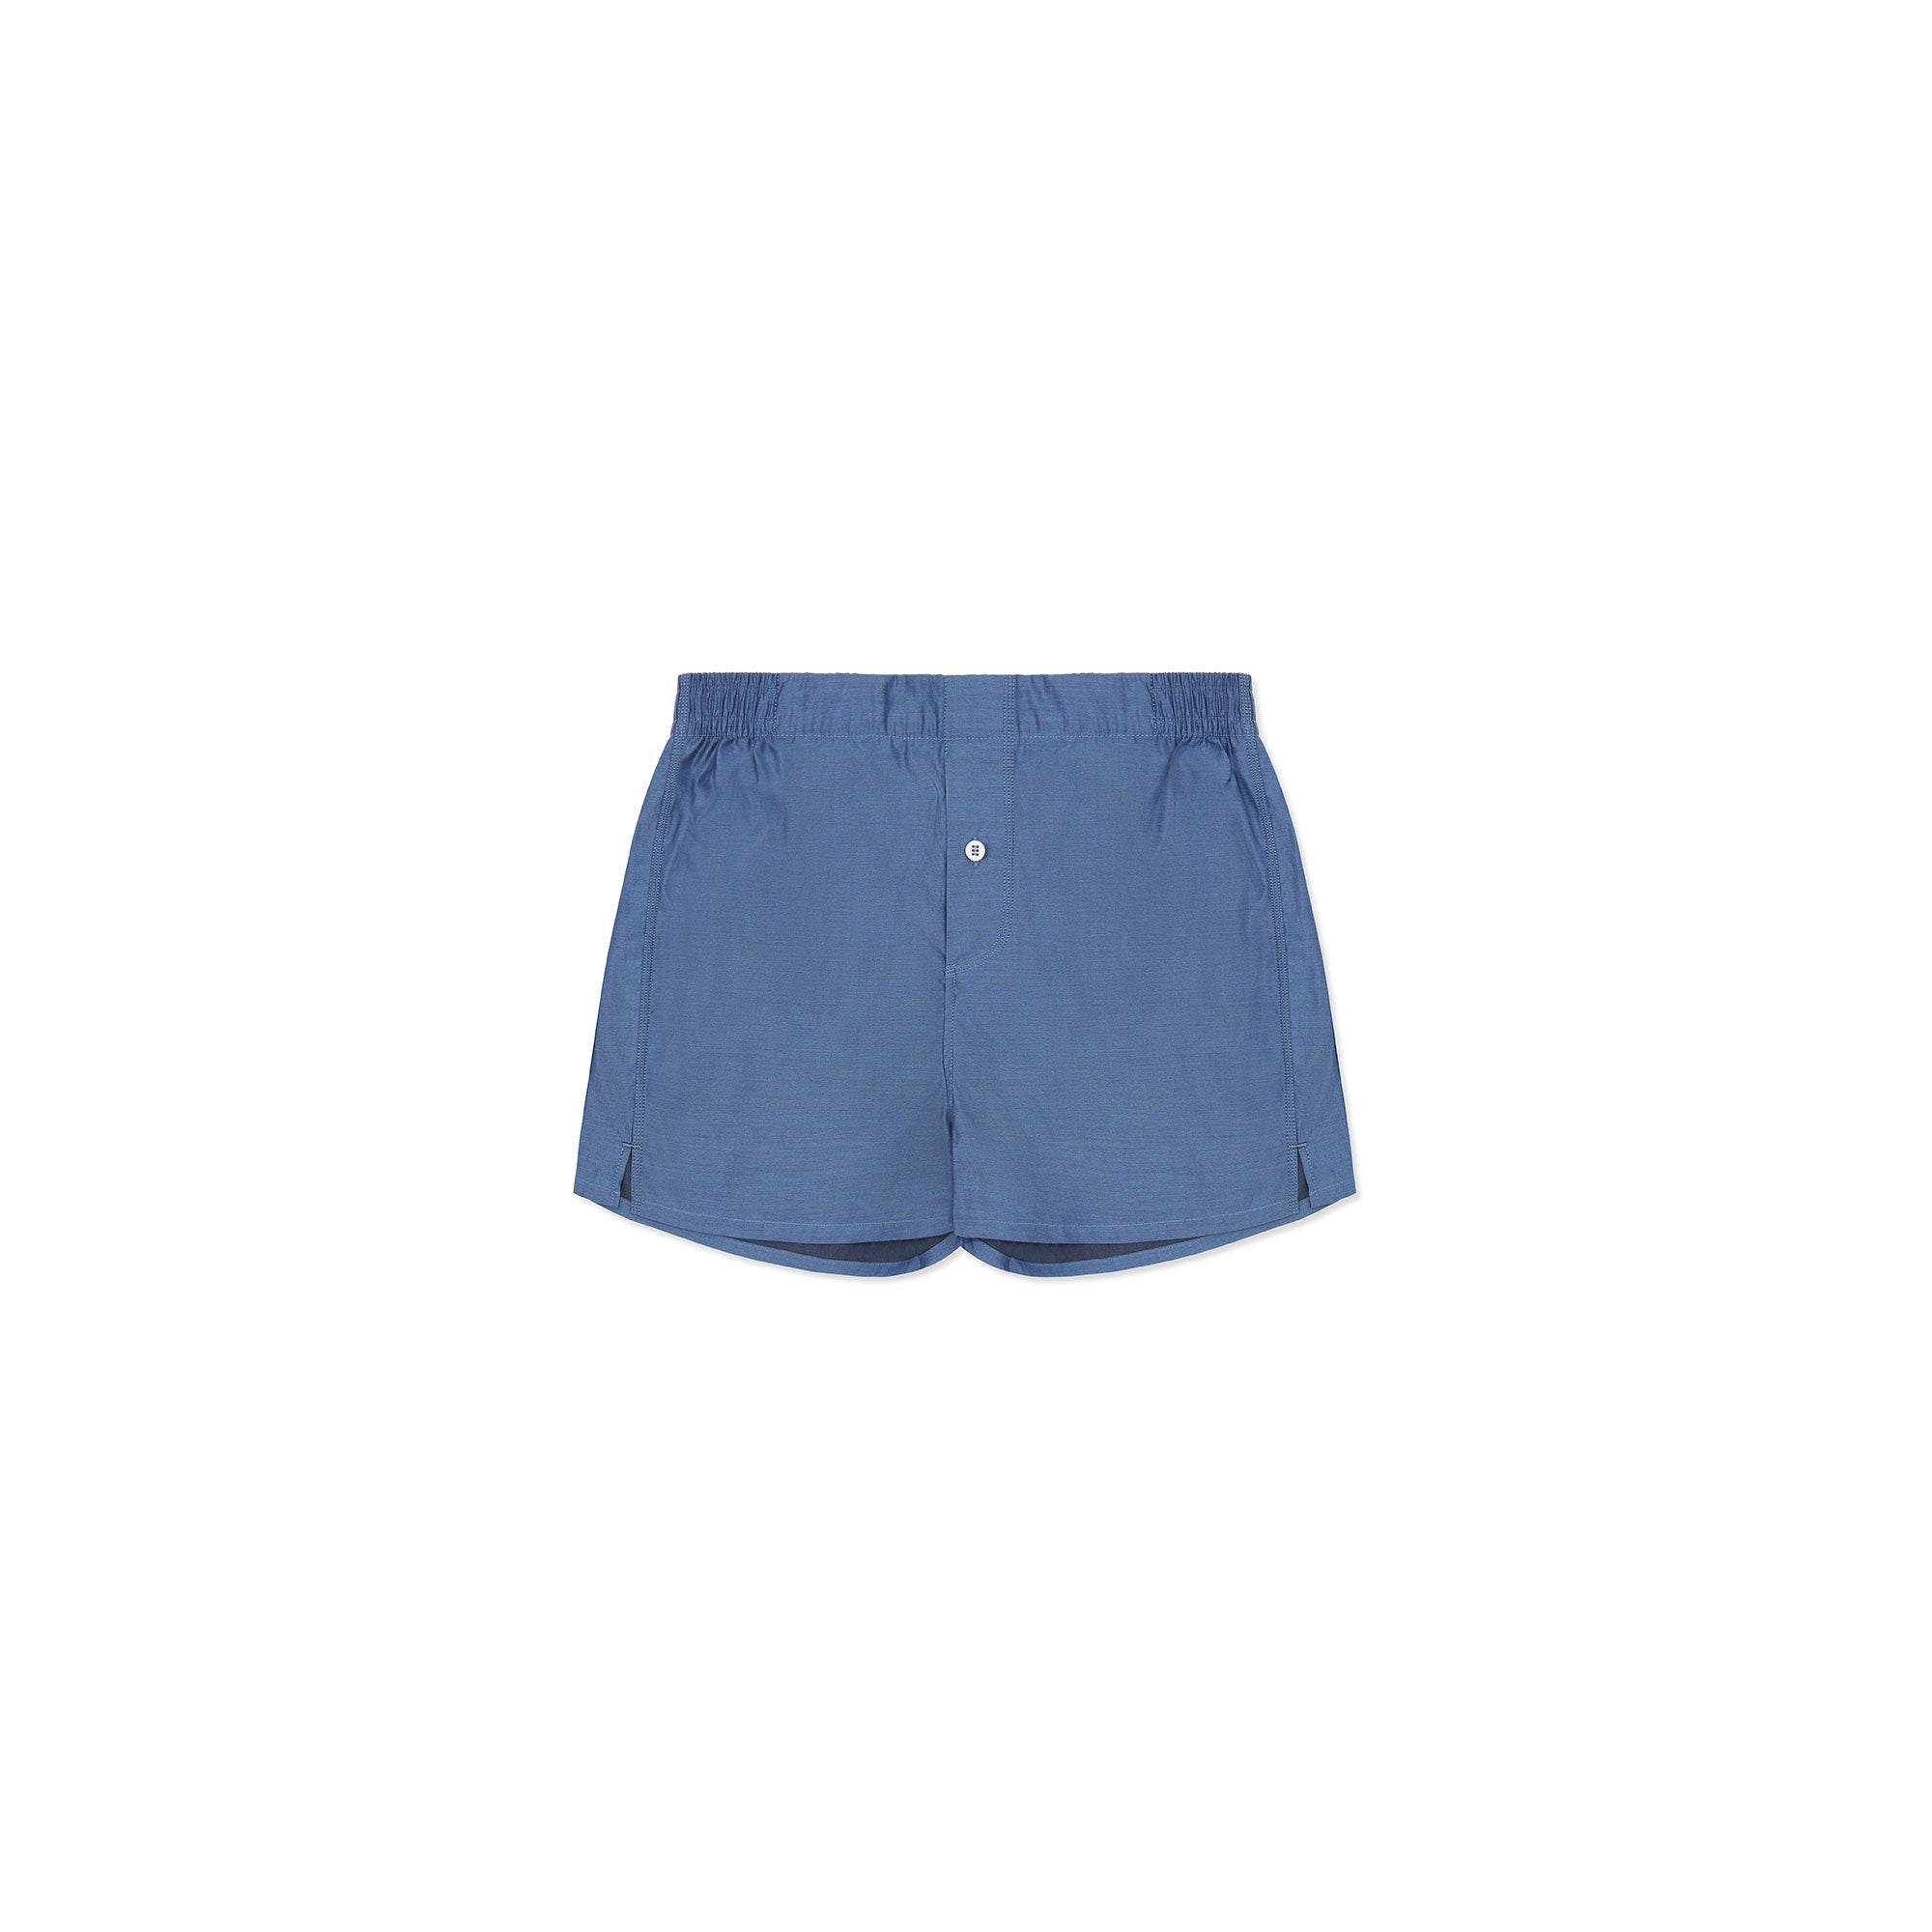 Monogrammed Boxer Short - Navy - Hamilton and Hare Ltd